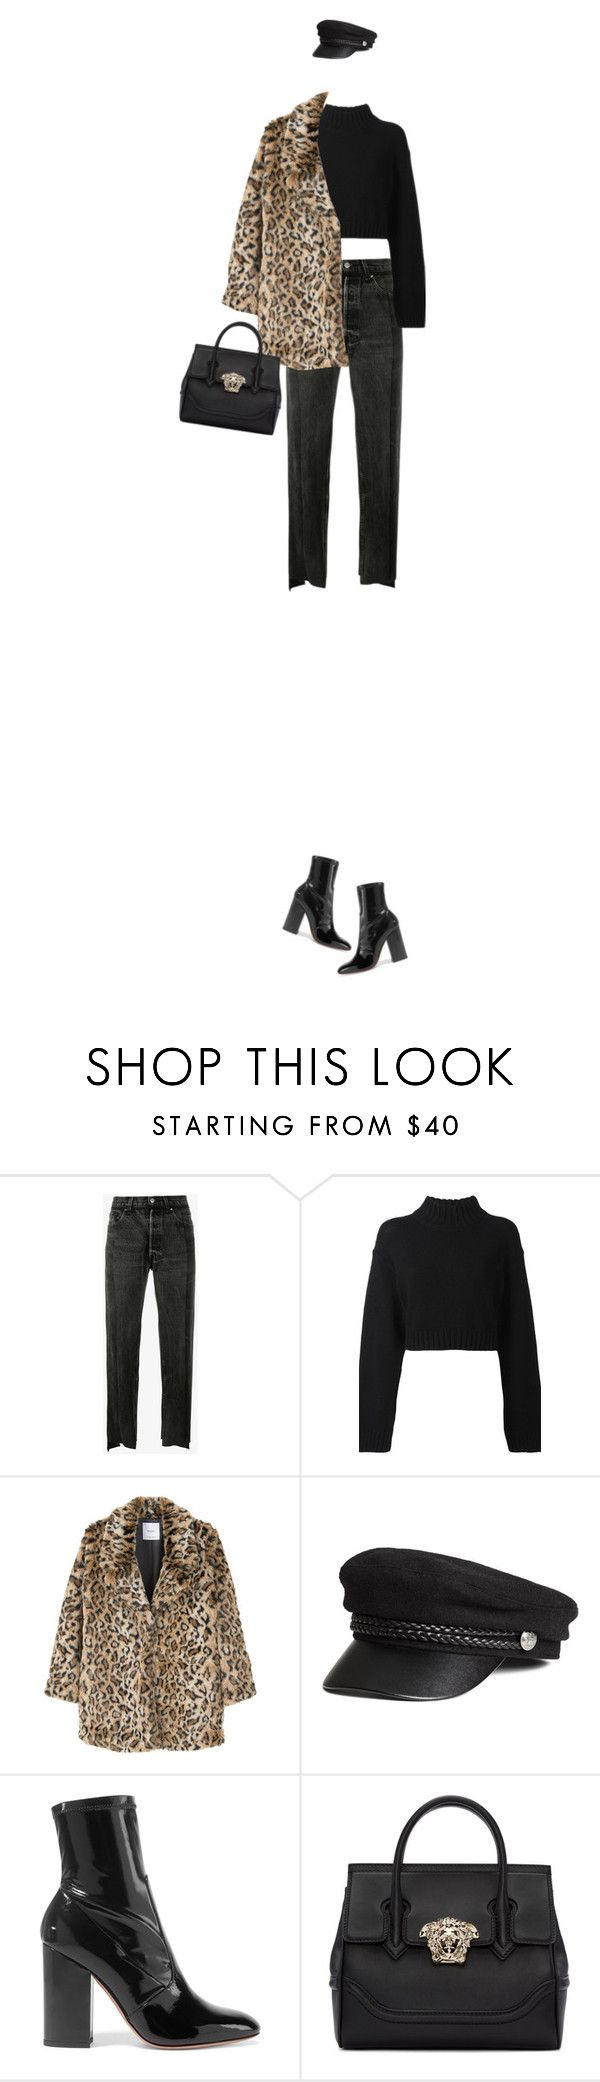 """Без названия #1821"" by alexa-girl2 ❤ liked on Polyvore featuring Vetements, DKNY, MANGO, Valentino, Versace, StreetStyle, leopard and fashionset"